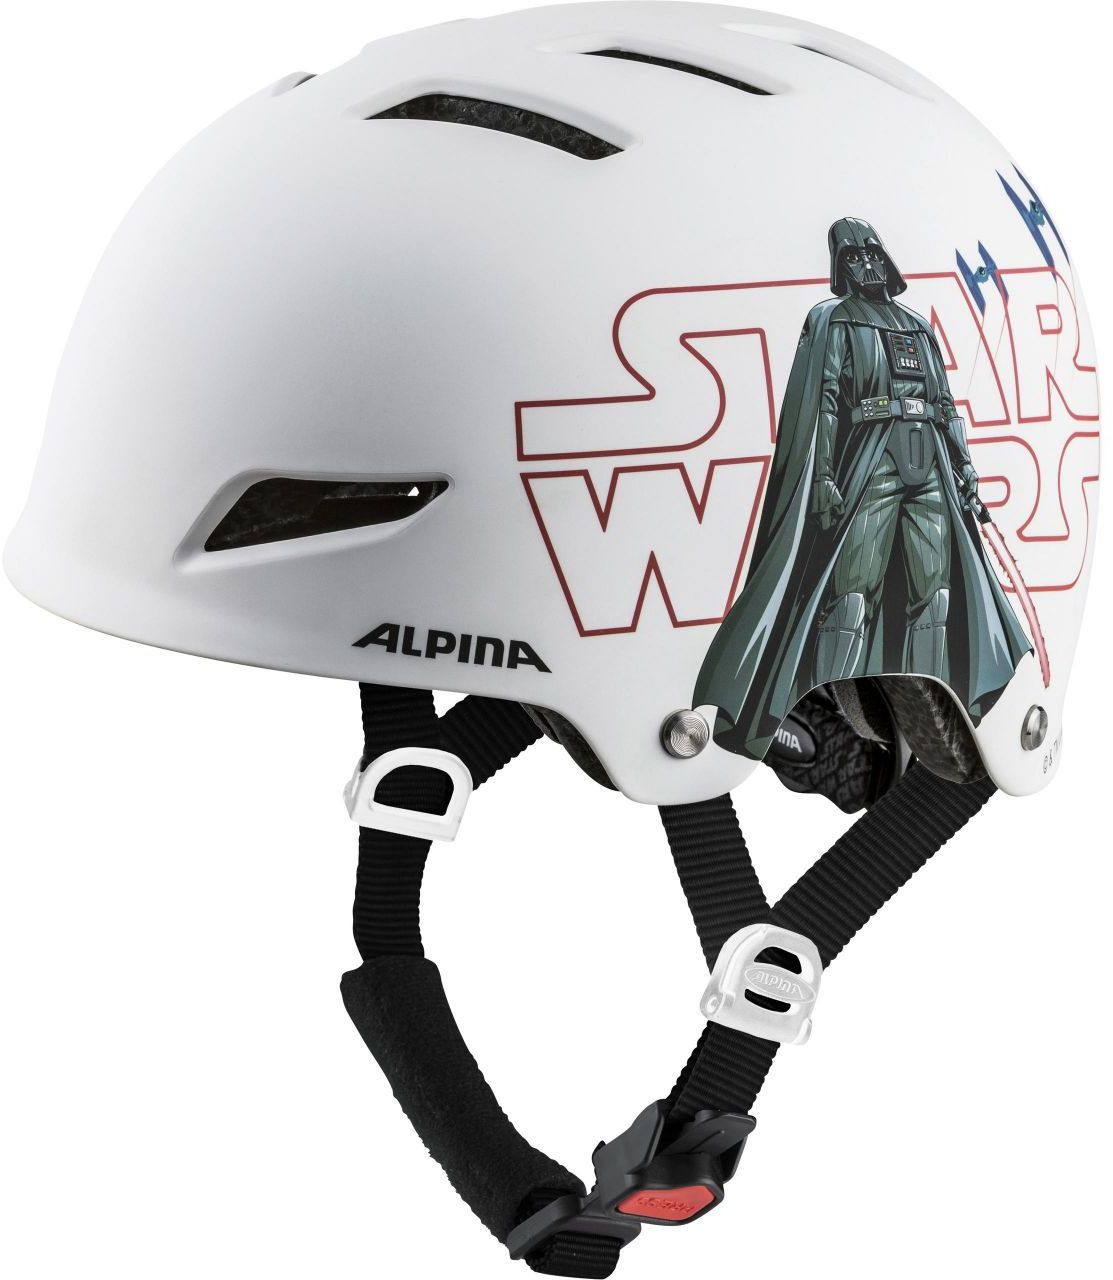 Image result for helma kolo starwars""